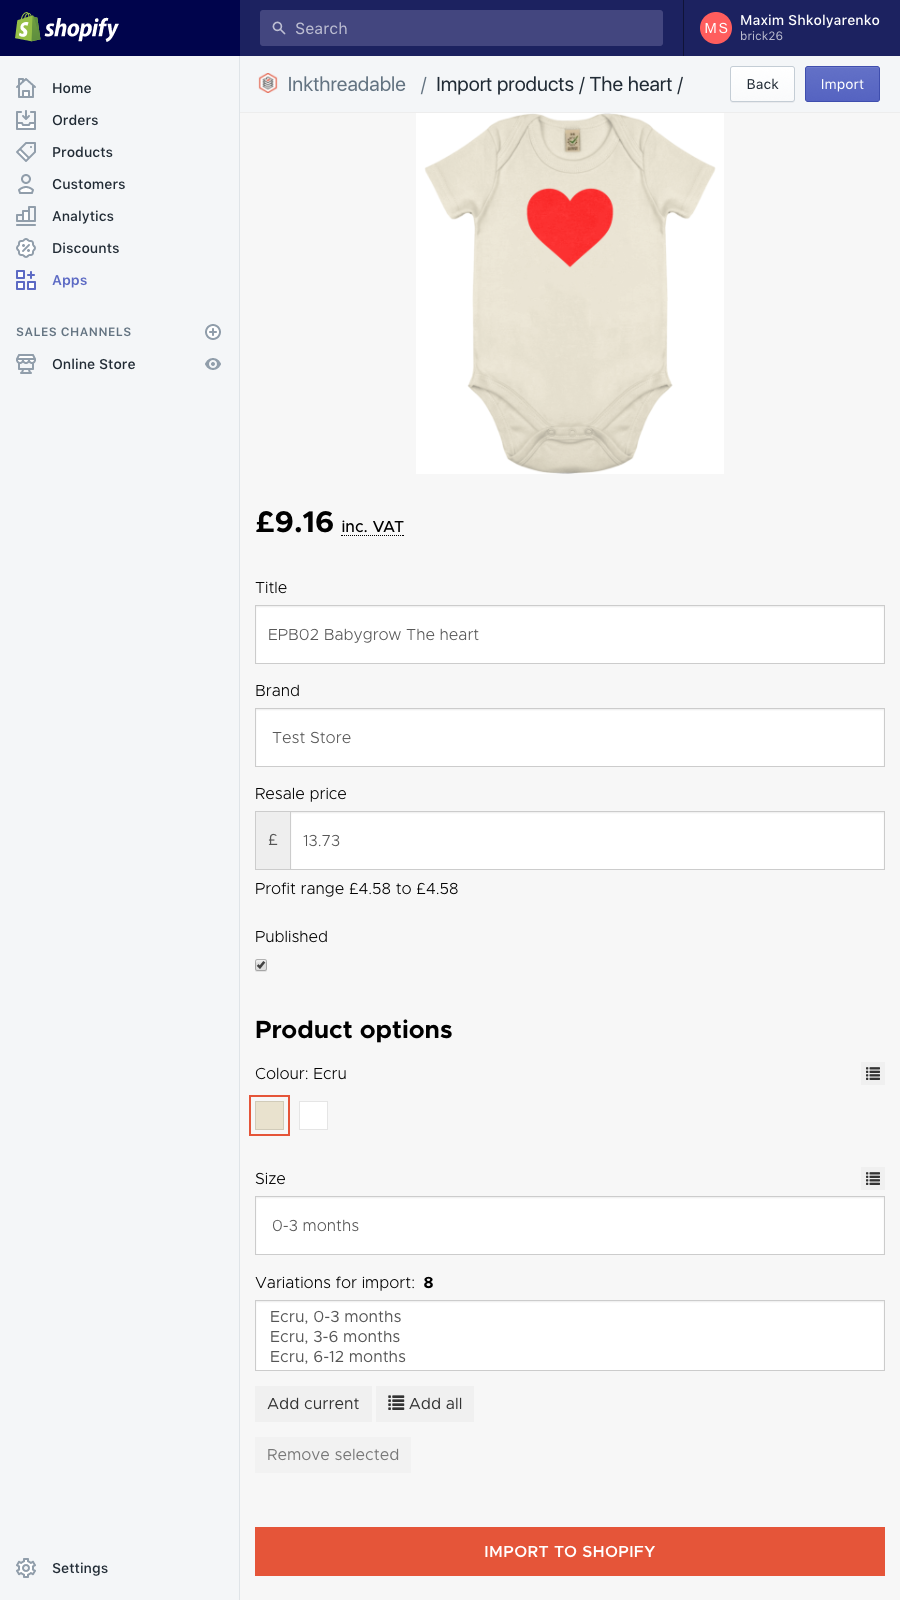 Inkthreadable mobile fulfilment app importing new product